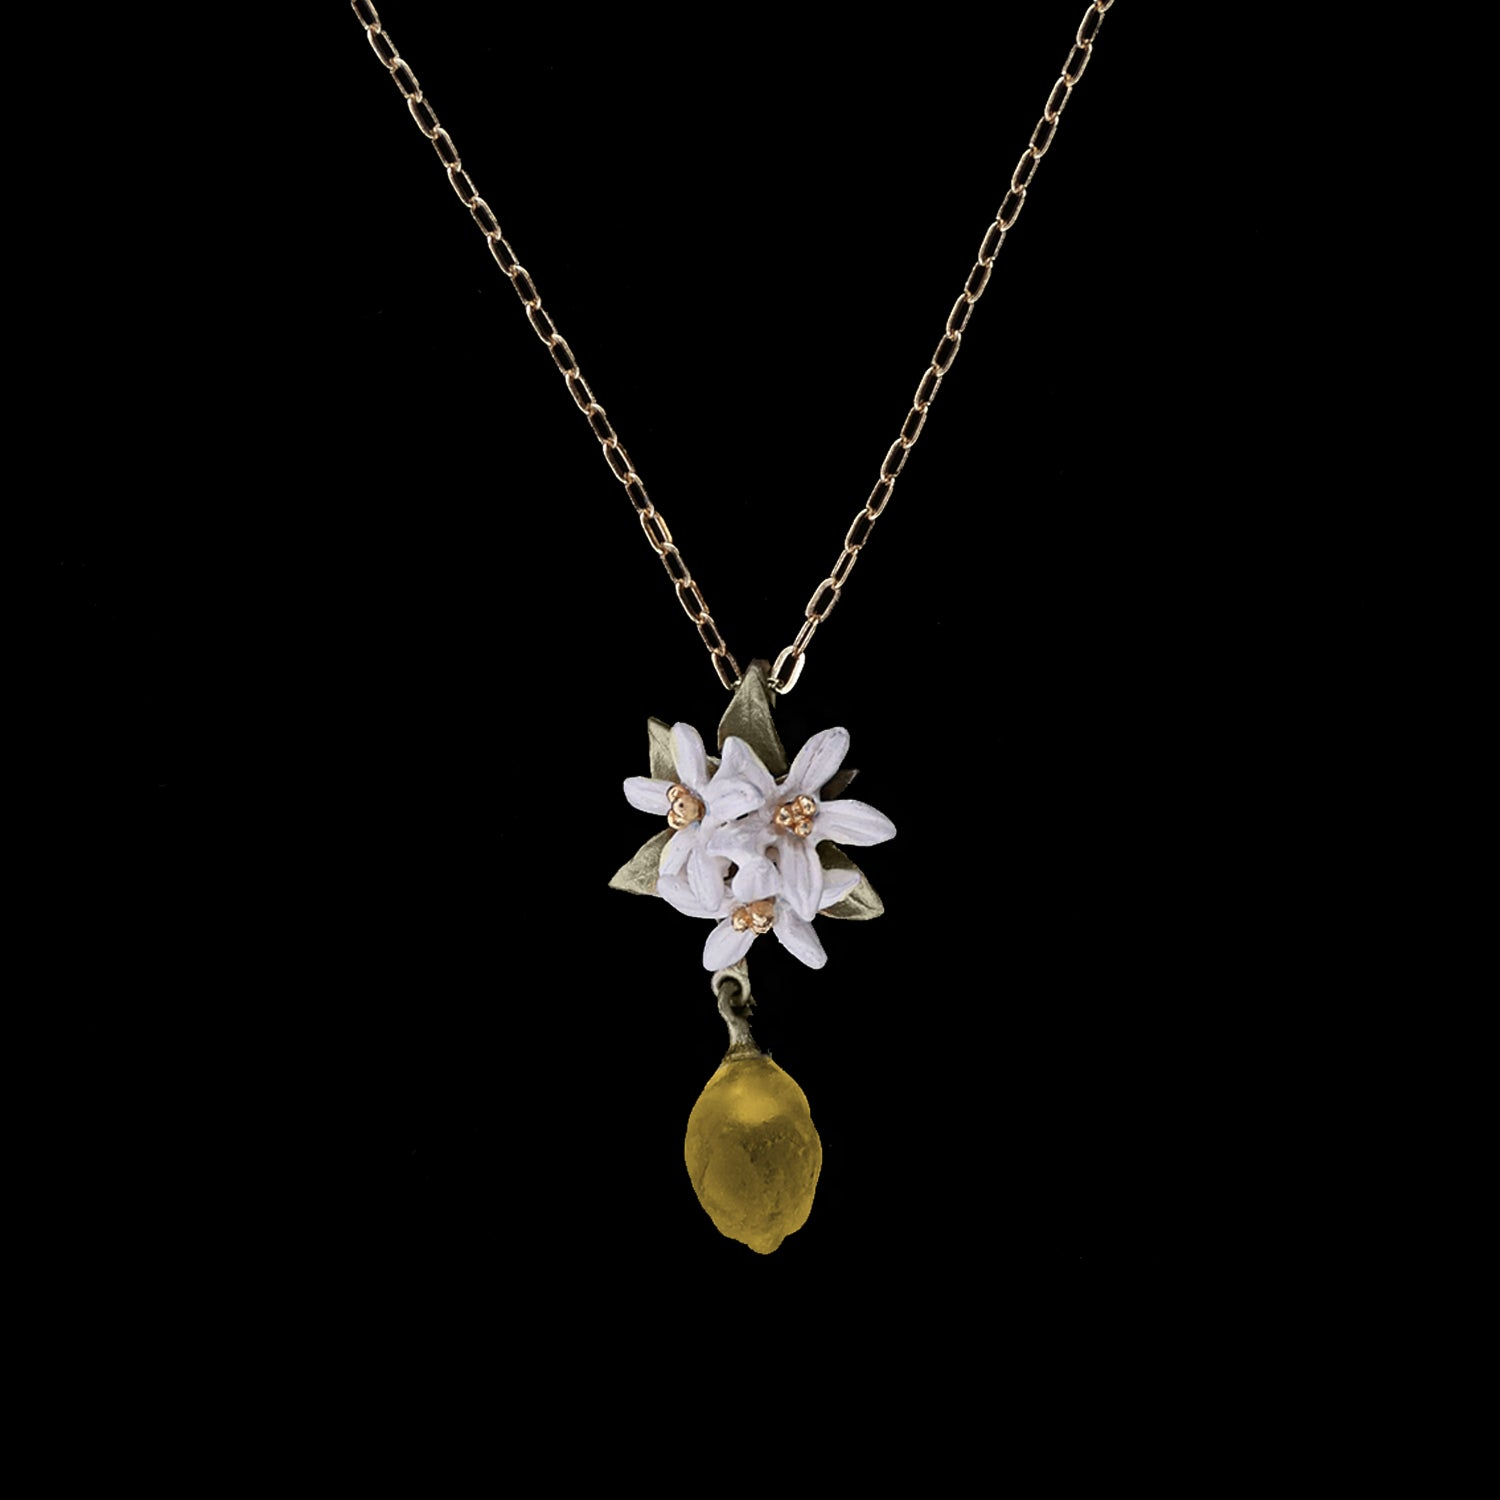 Lemon Drop Pendant - Flower